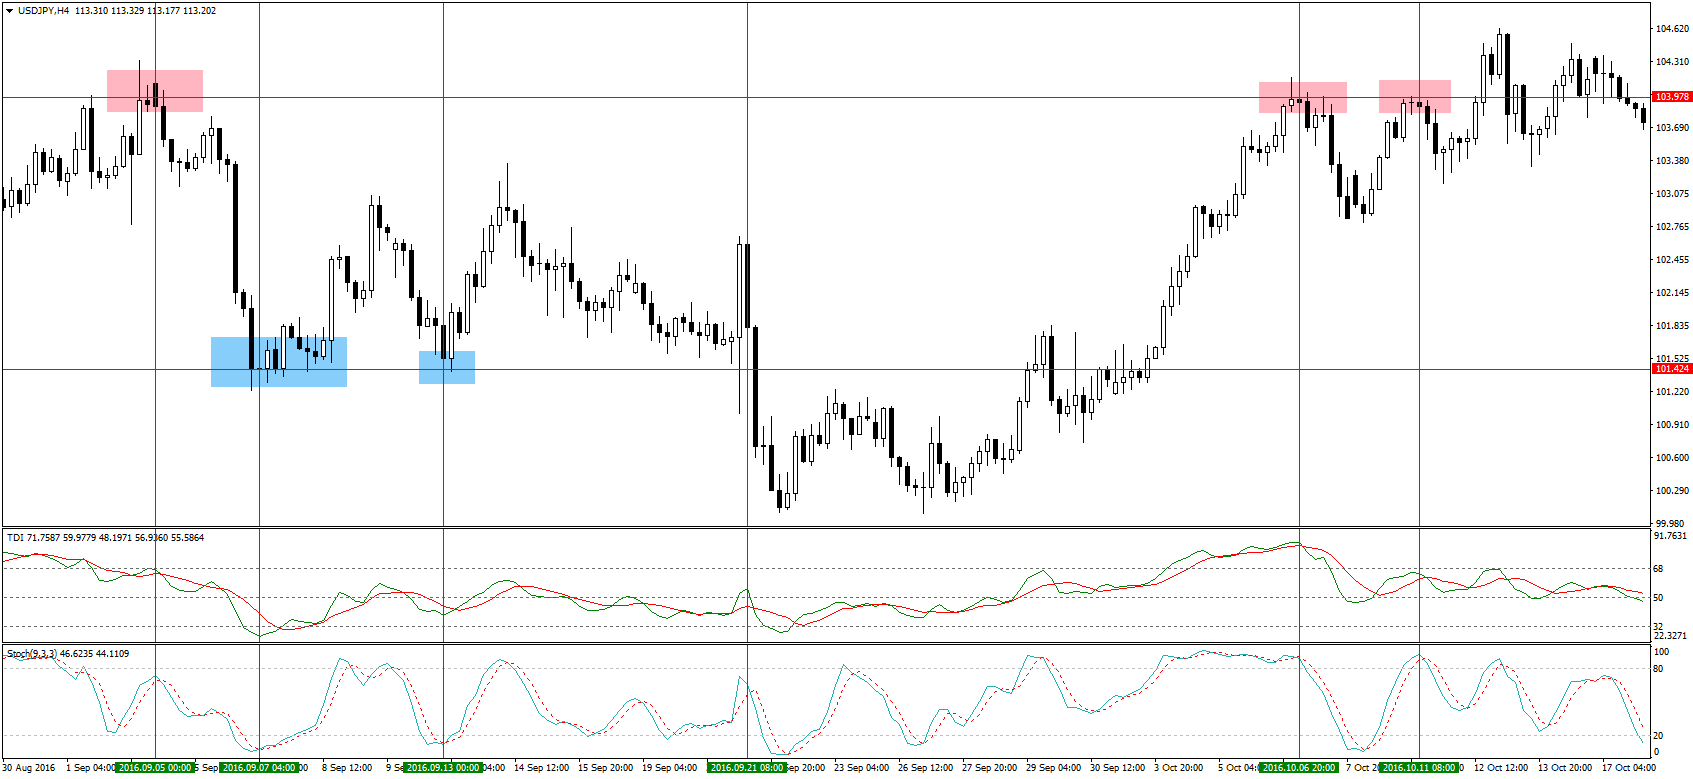 Identifying the false breakout trading strategy